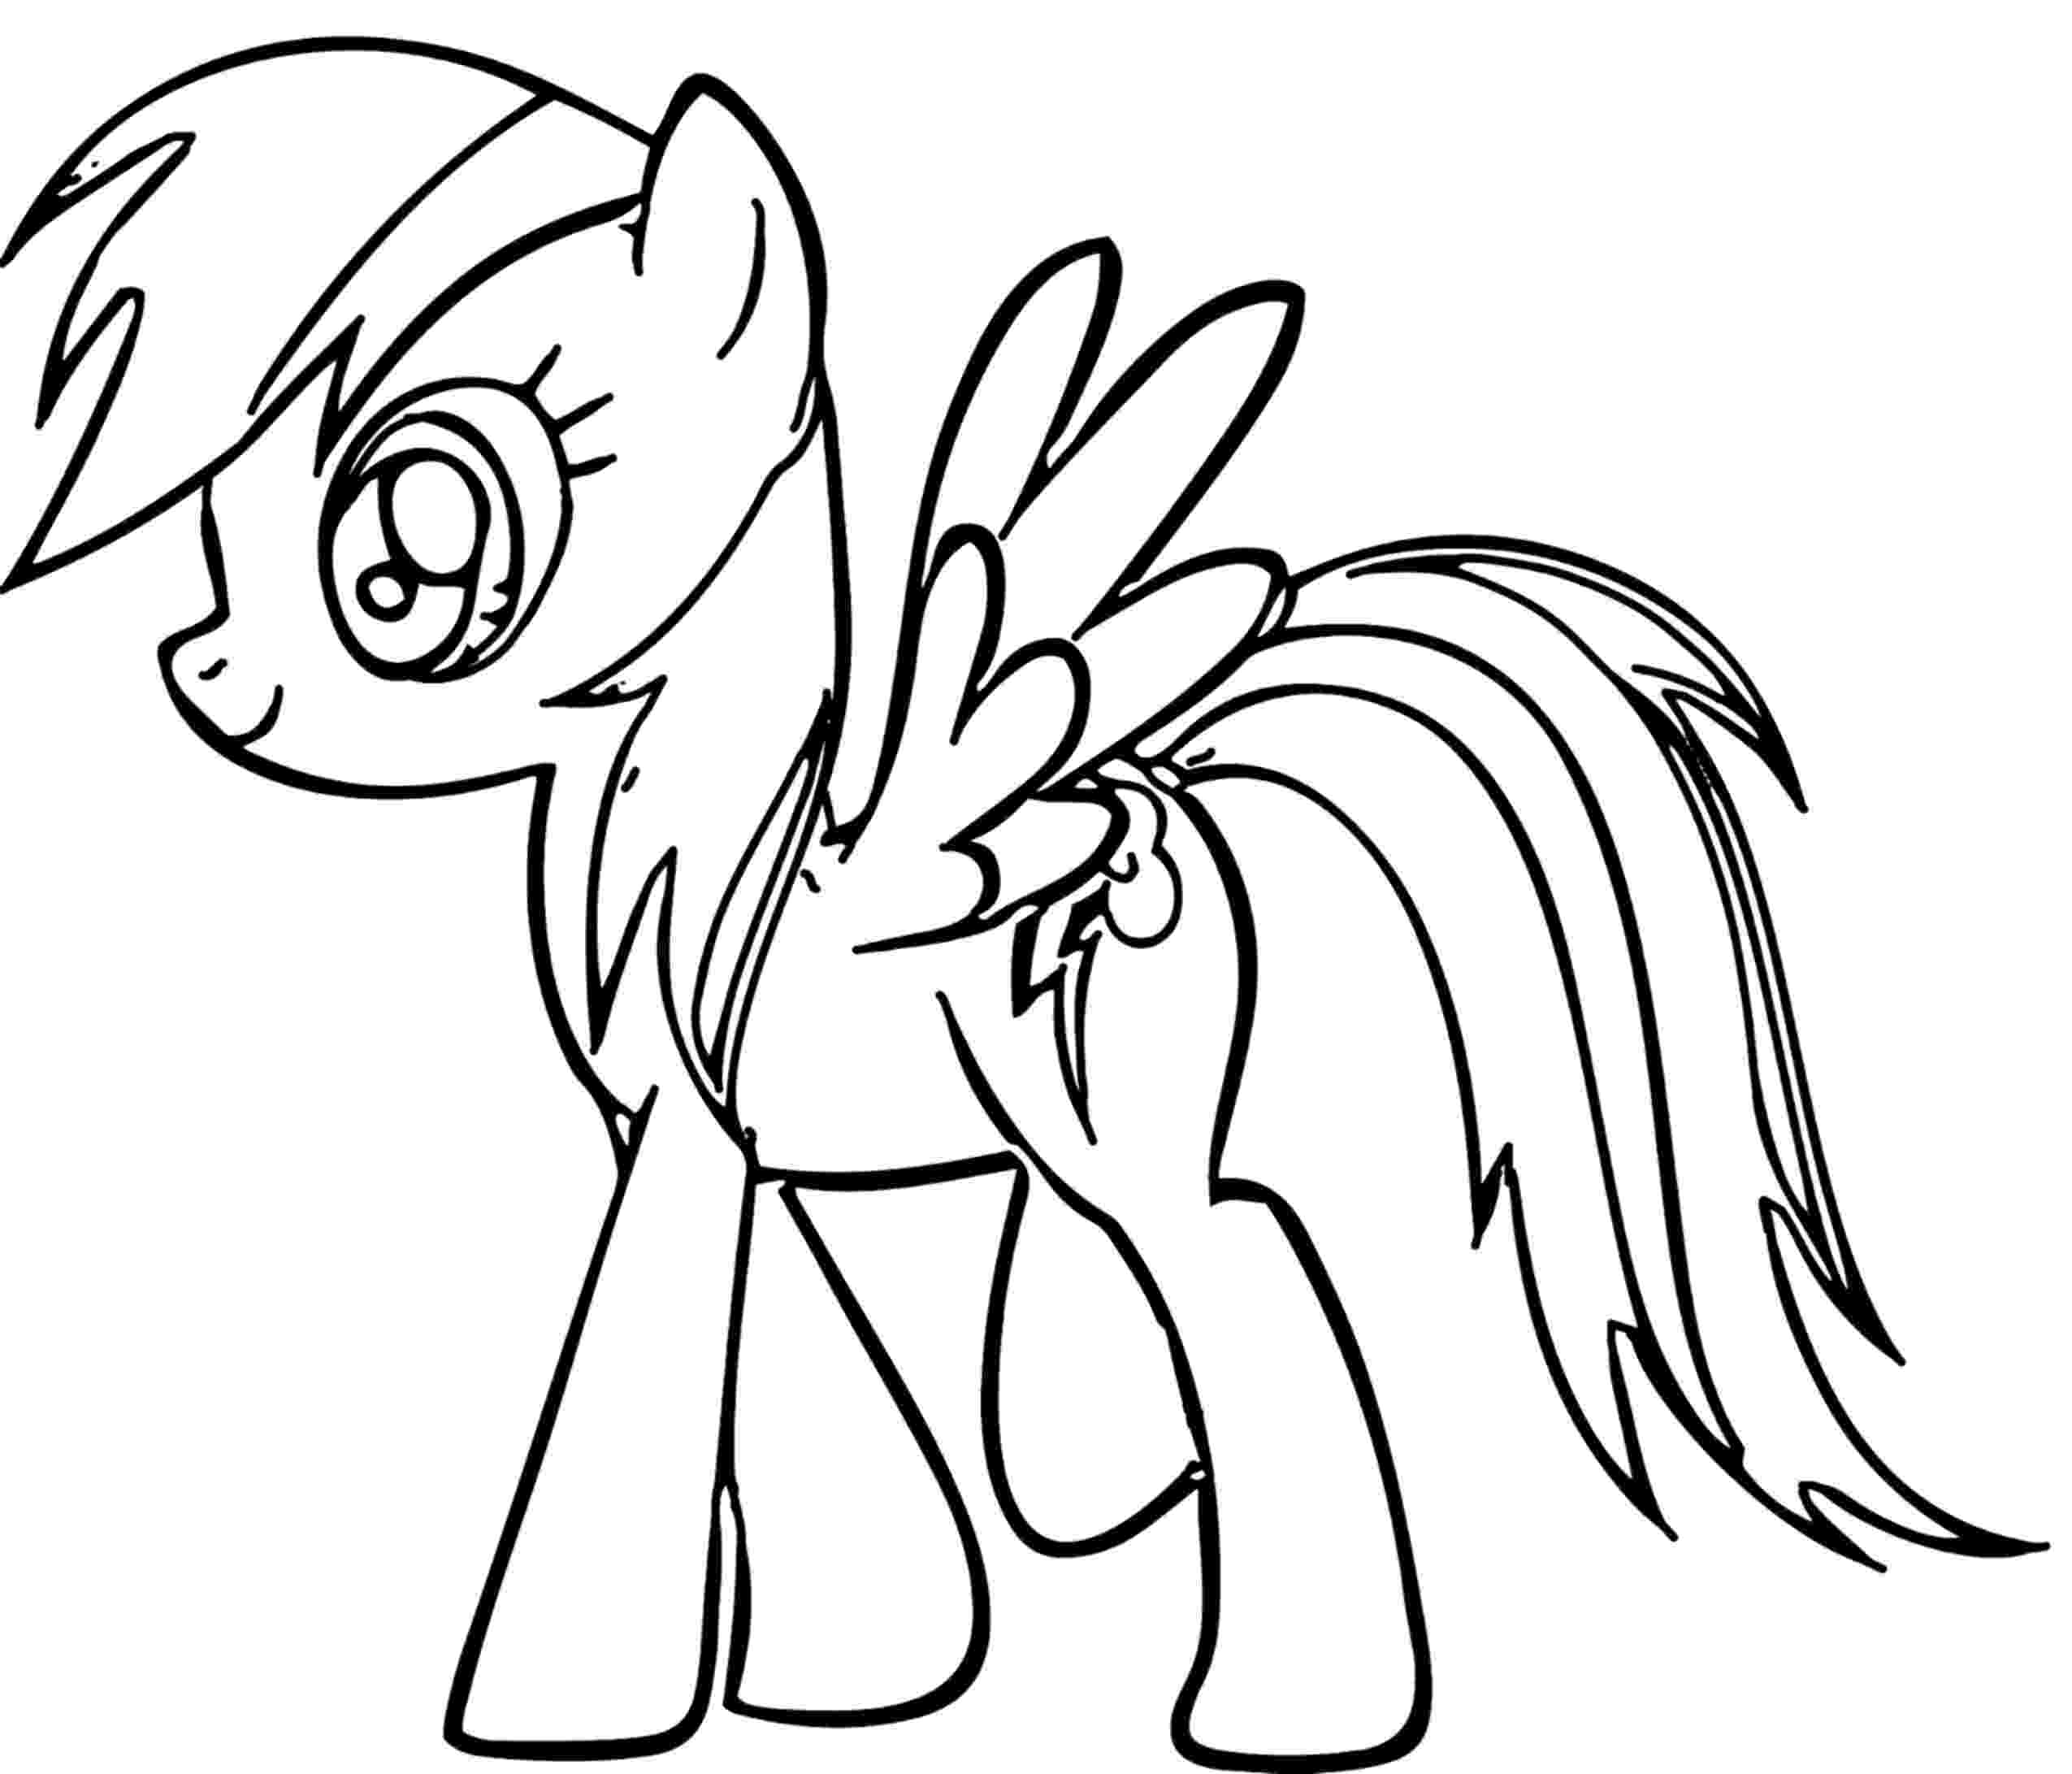 my little pony coloring pages rainbow dash my little pony rainbow dash coloring pages coloring my pages dash pony little rainbow